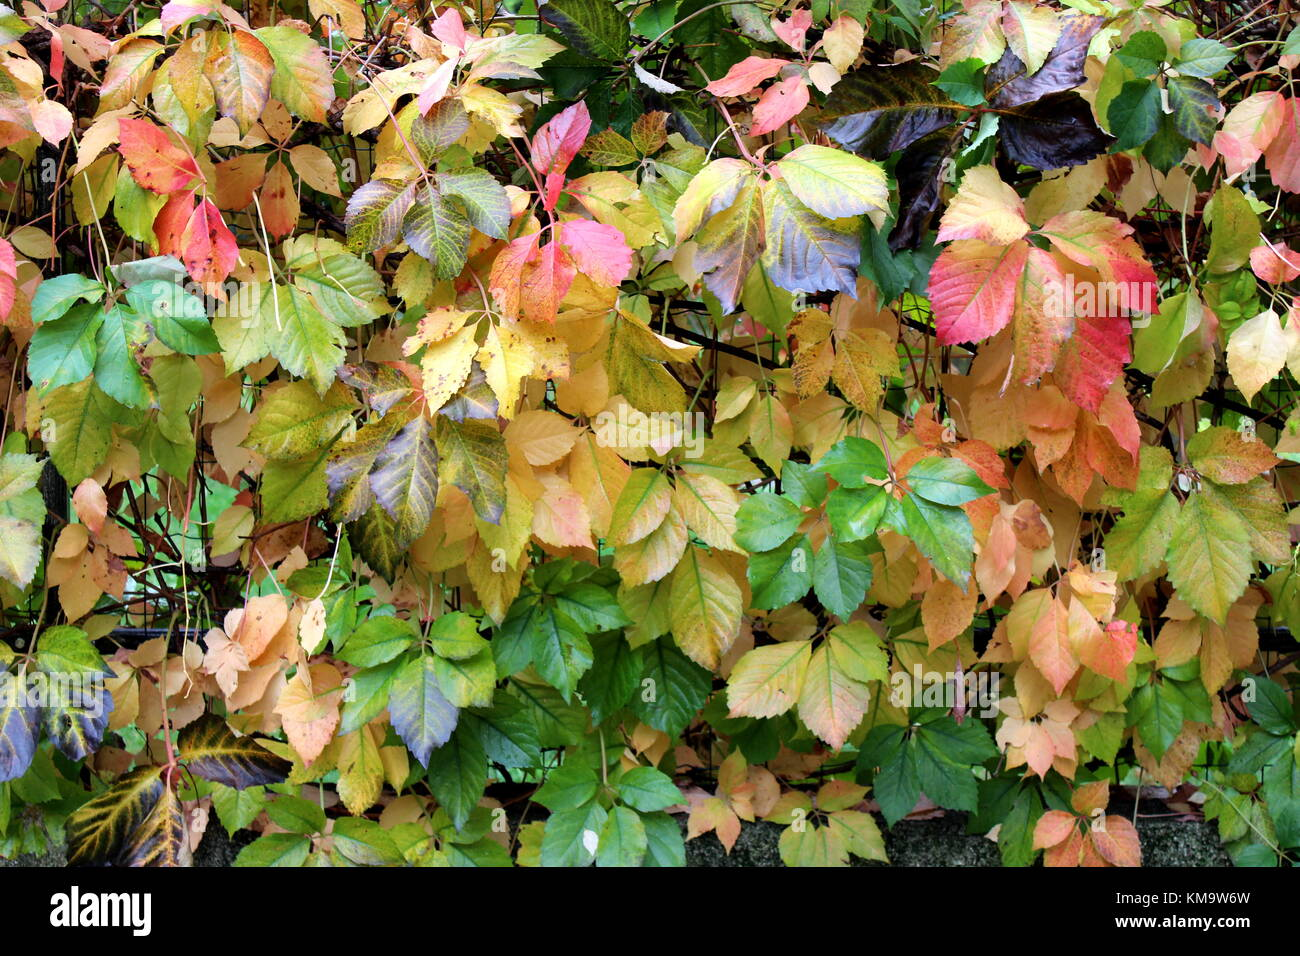 Green Creeper Plant On Wall Stock Photos & Green Creeper Plant On ...